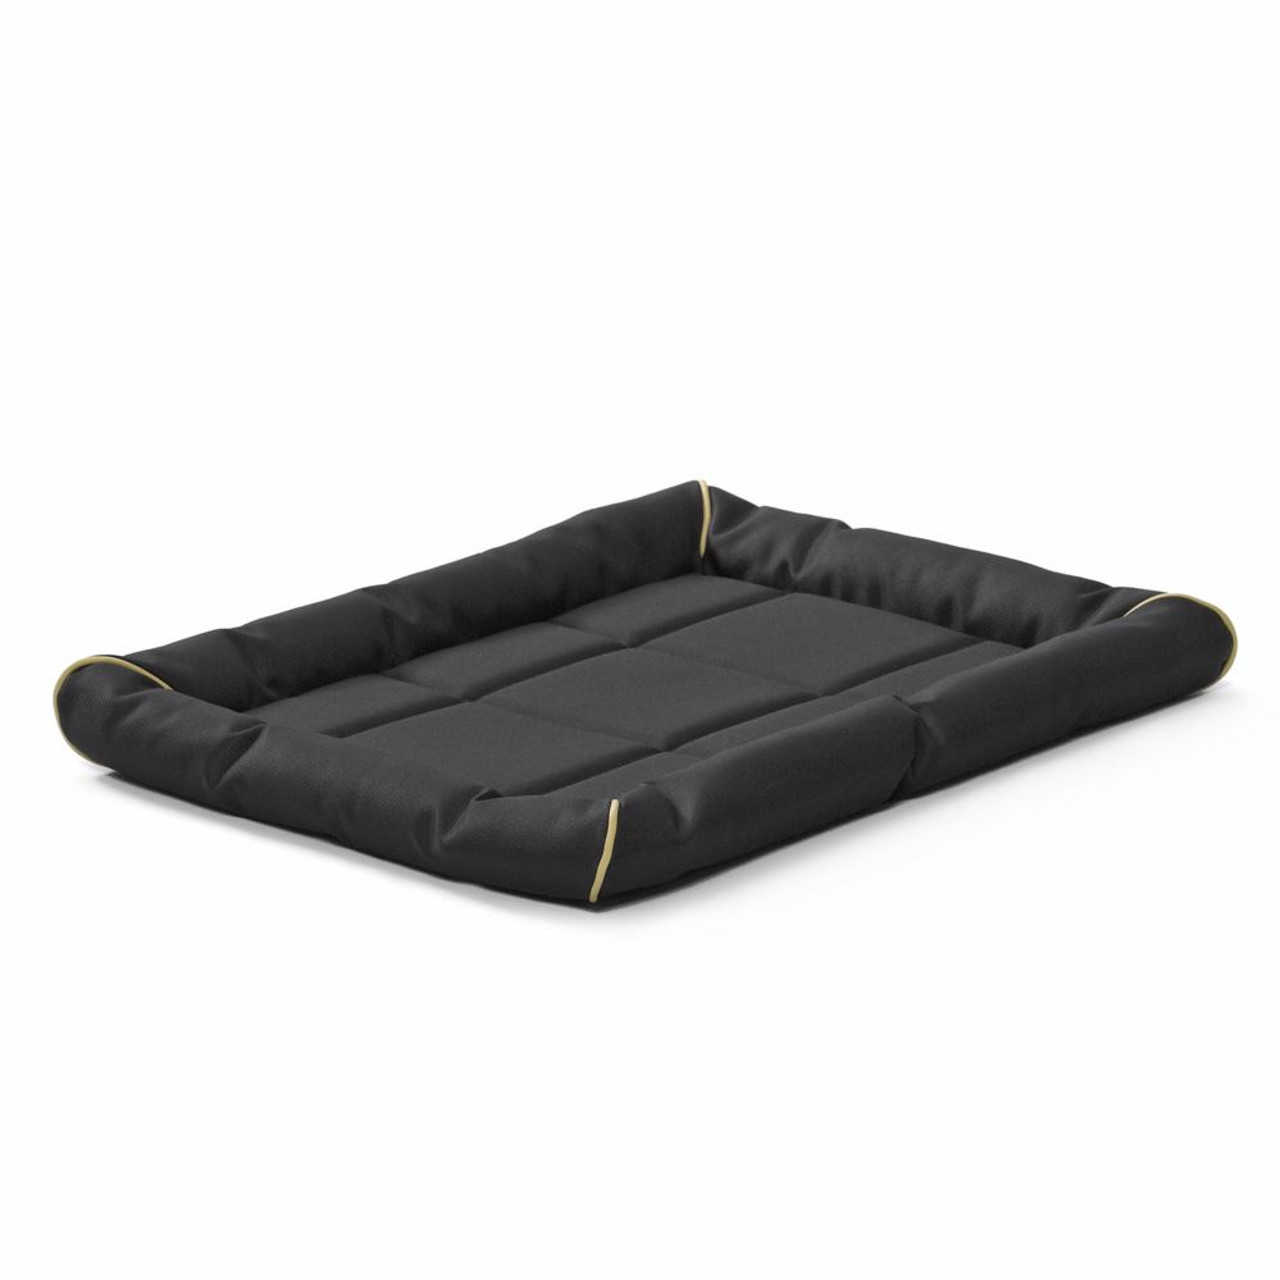 Midwest QuietTime MAXX Pet Bed for Dogs & Cats - Black